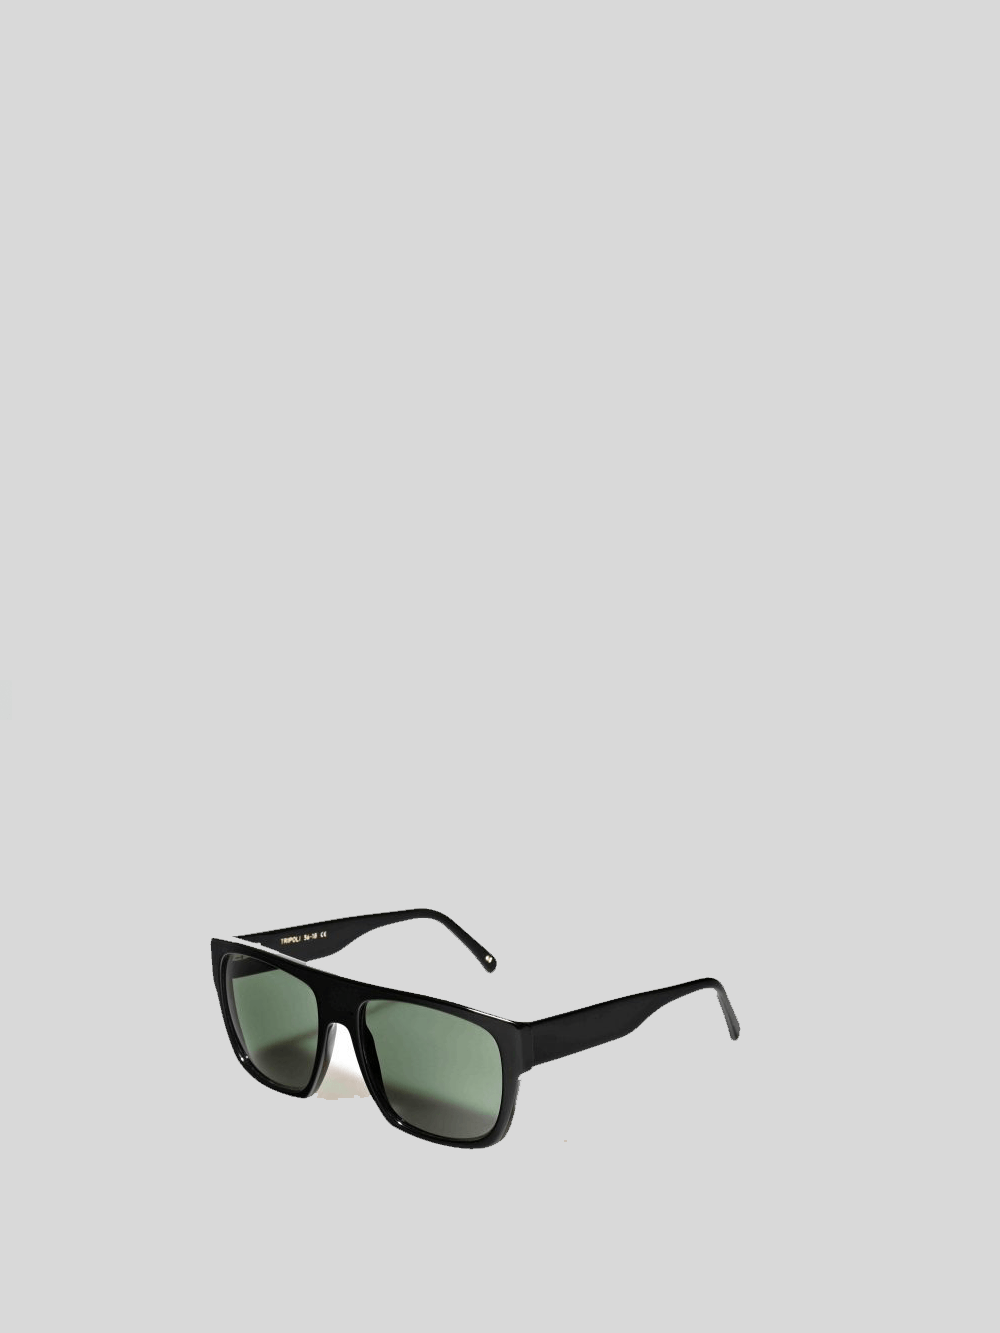 Tripoli Black 01 Green 56' Sunglasses L.G.R.